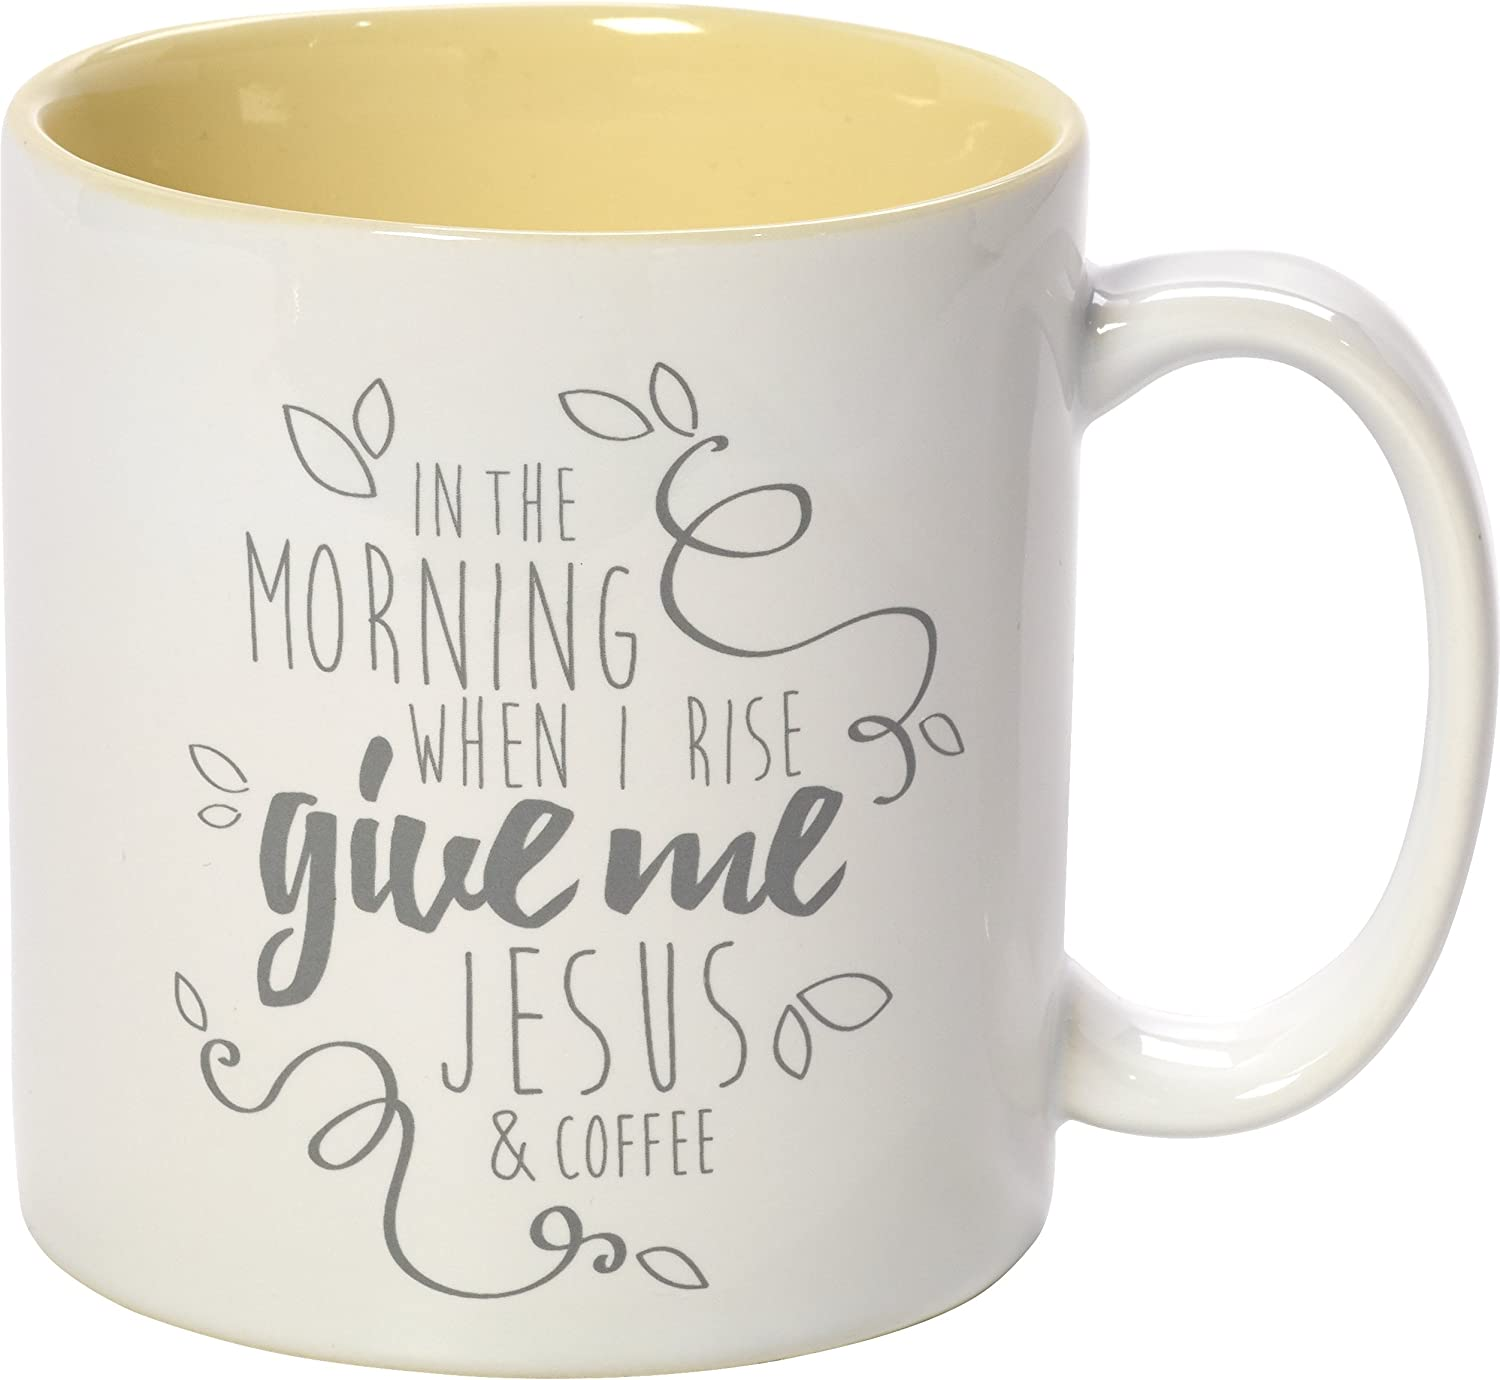 Precious Moments Yellow Stoneware 11oz Coffee Mug Inspirational Home Decor, One Size, Multi